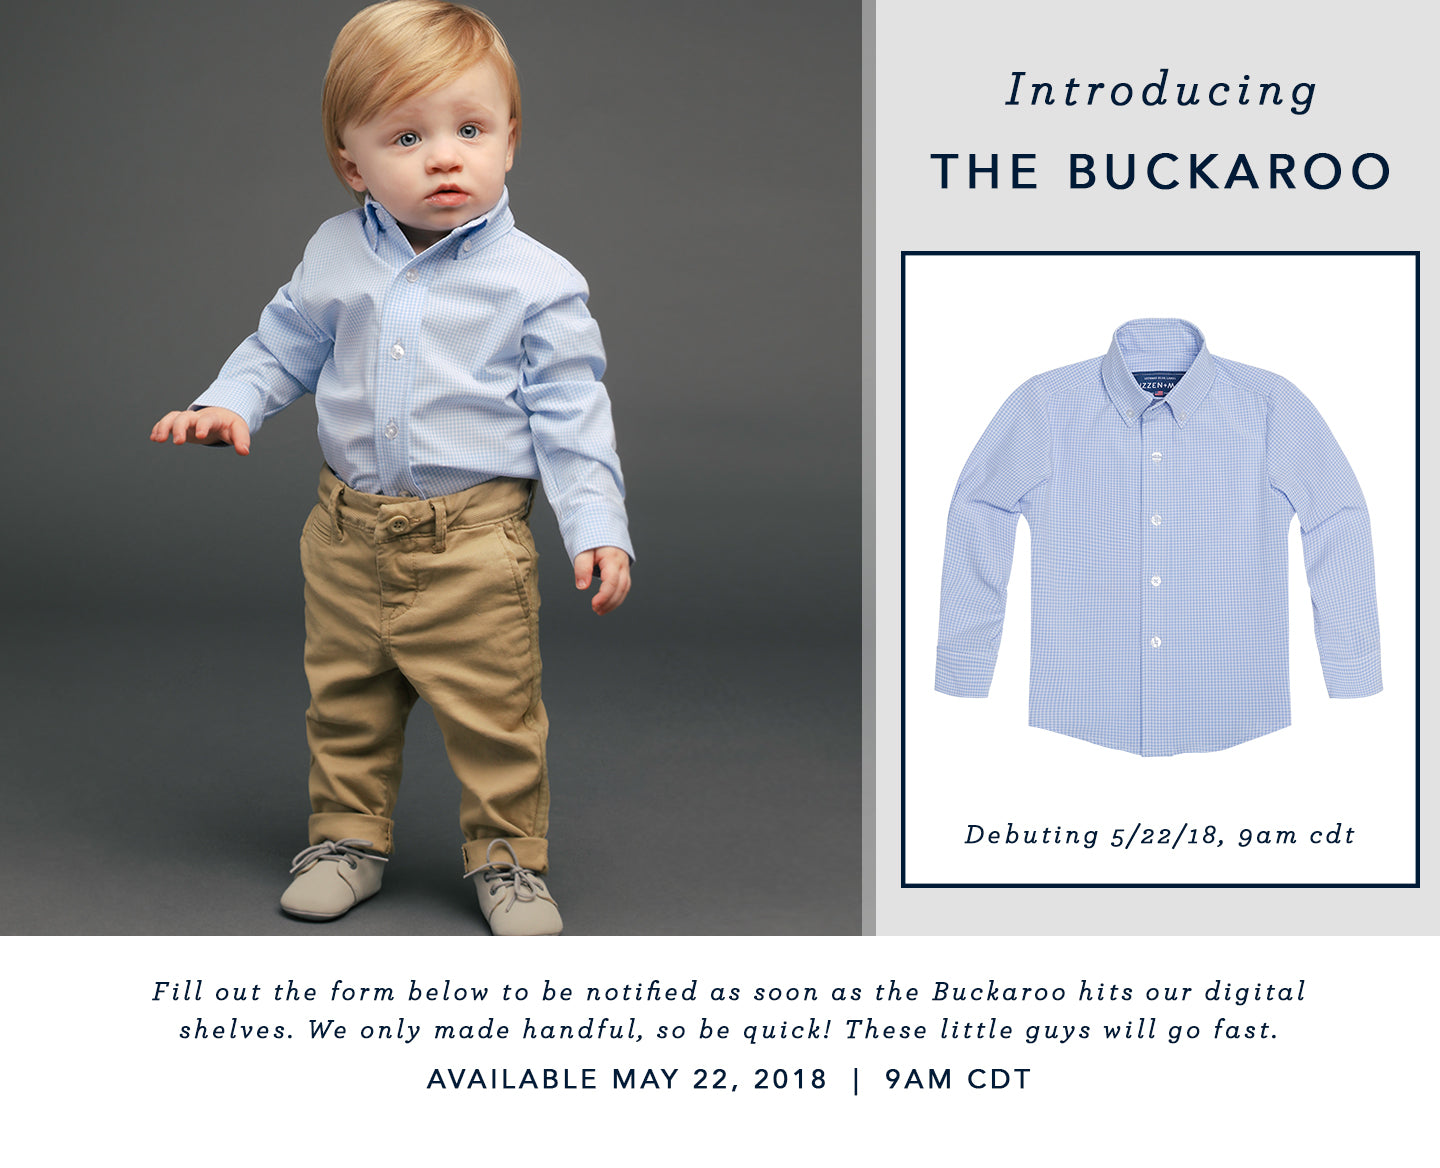 Introducing the Buckaroo. Fill out the form below to be notified as soon as the Buckaroo hits our digital shelves. We only made handful, so be quick! These little guys will fast. available MAY 22, 2018 at 9am cdt